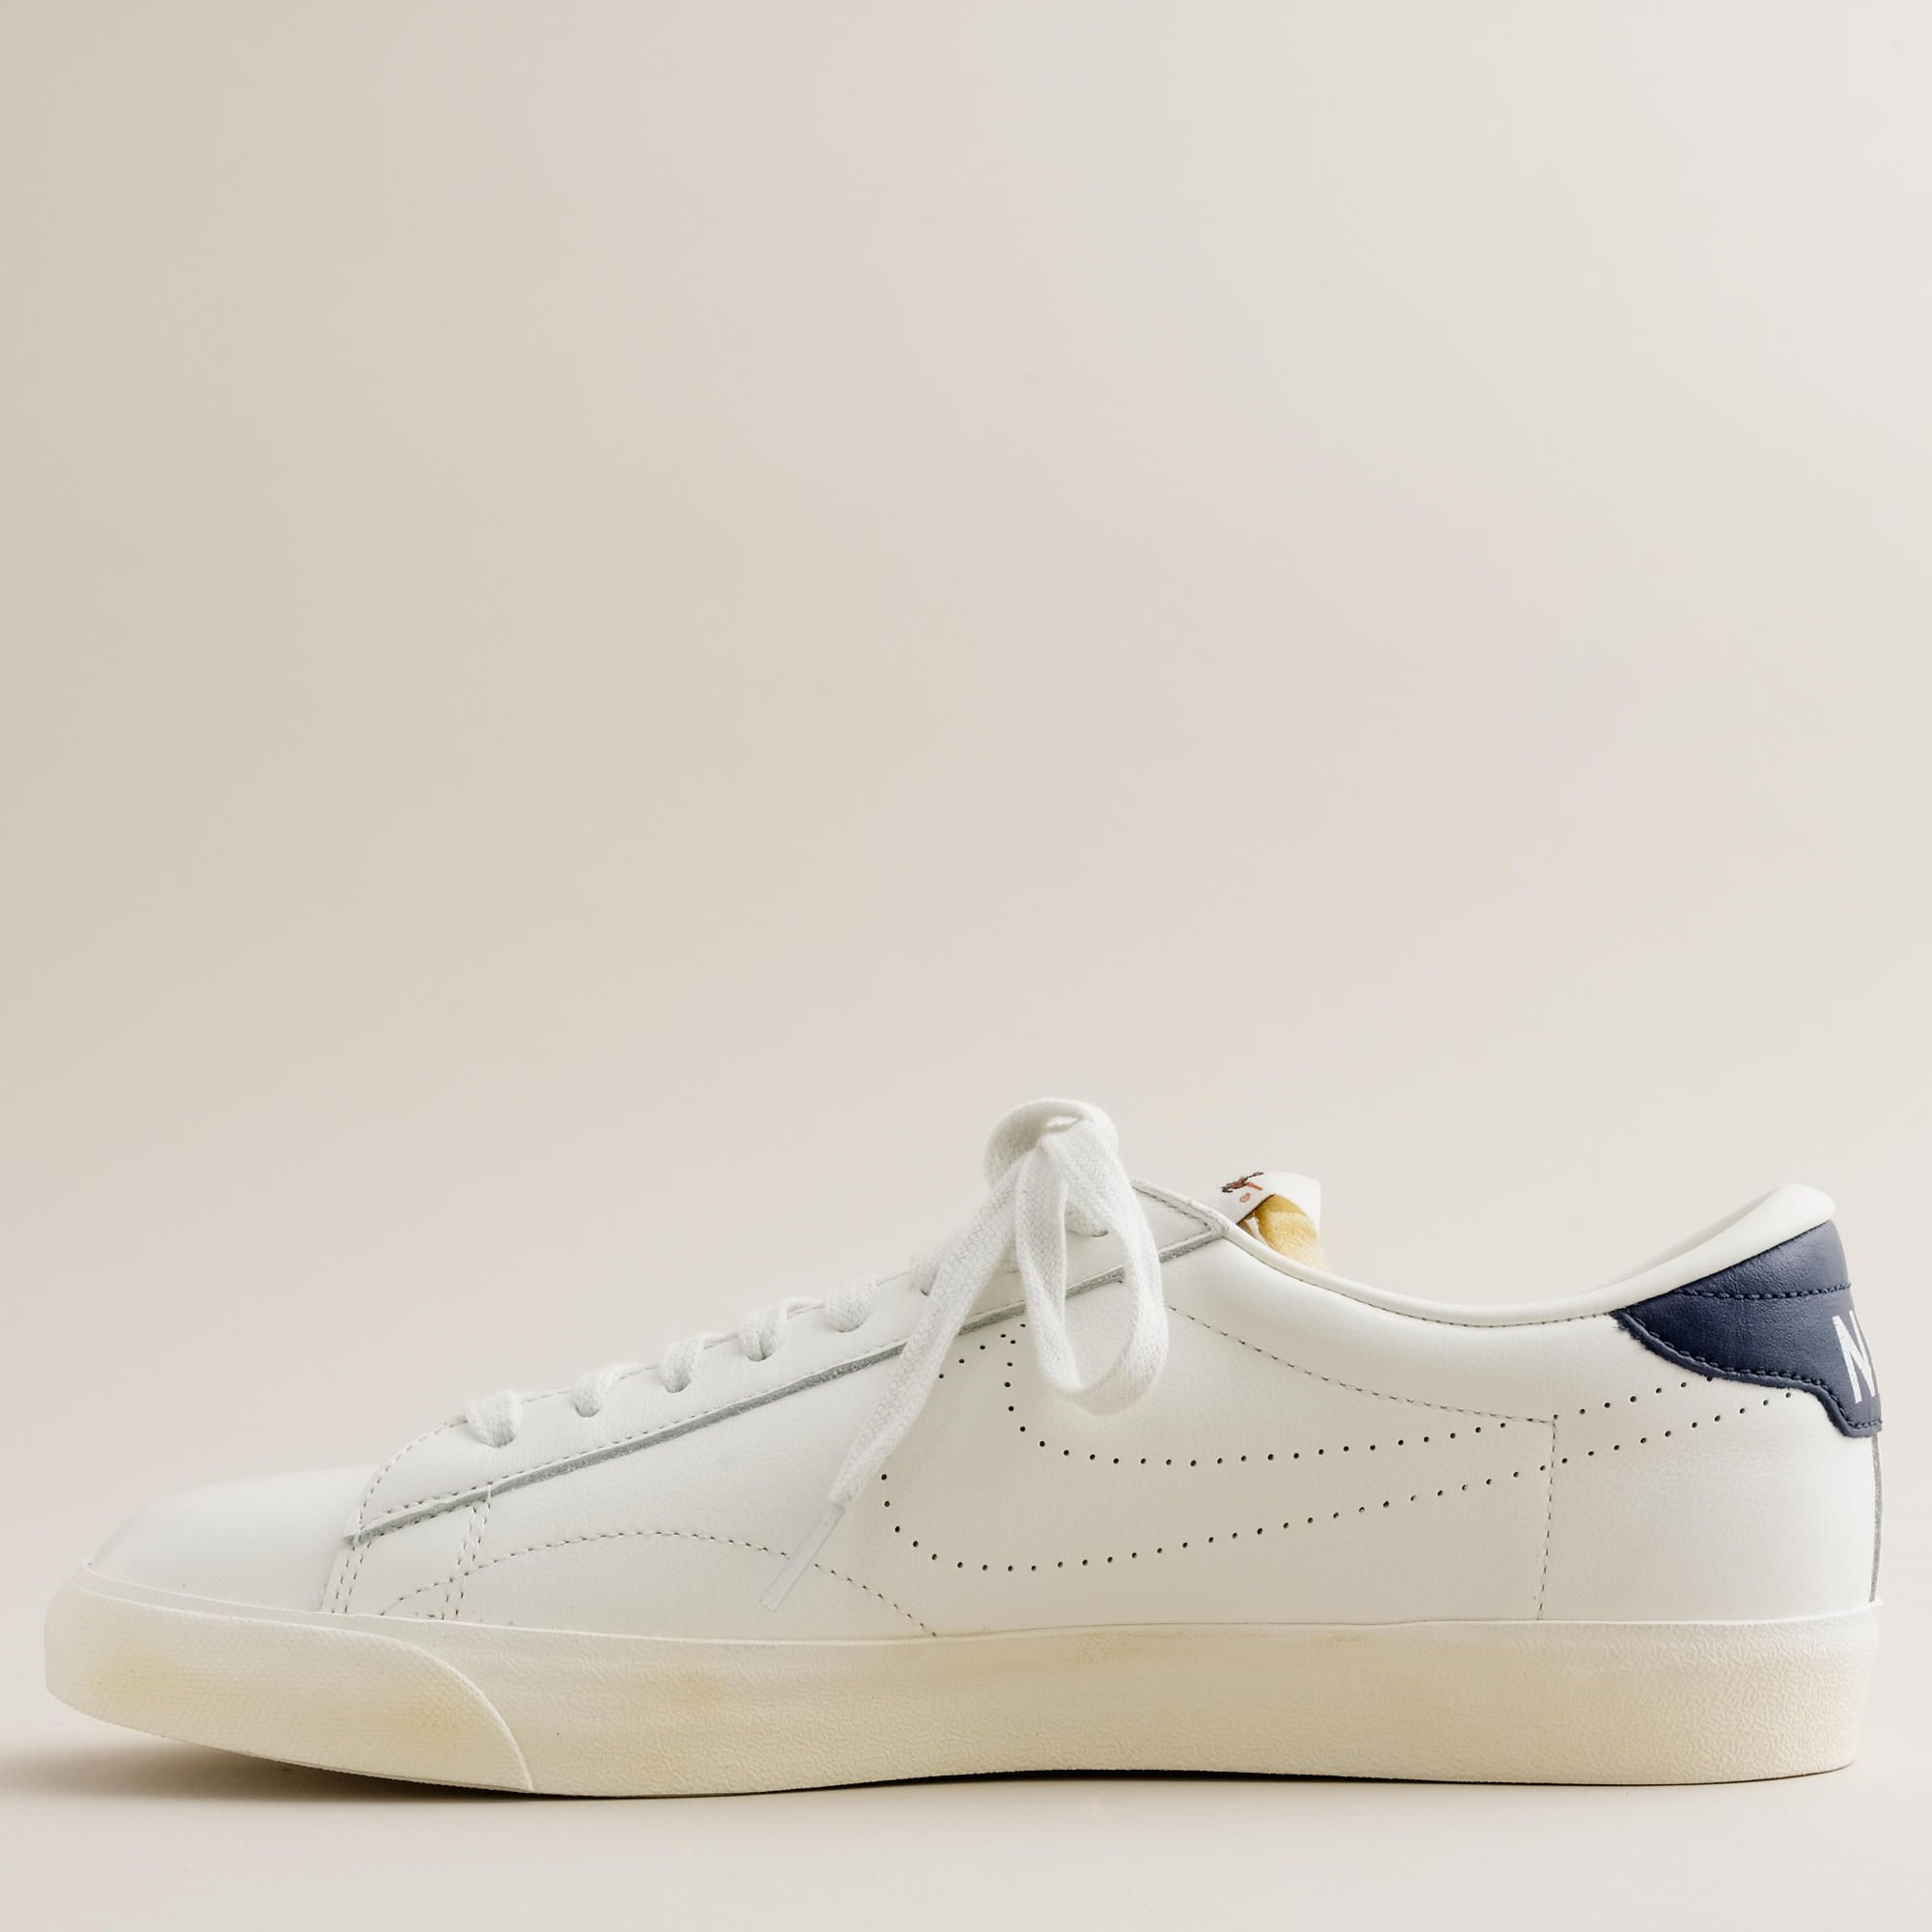 33ad5e236 Nike® for J.Crew Vintage Collection leather Tennis Classic AC sneakers    sneakers